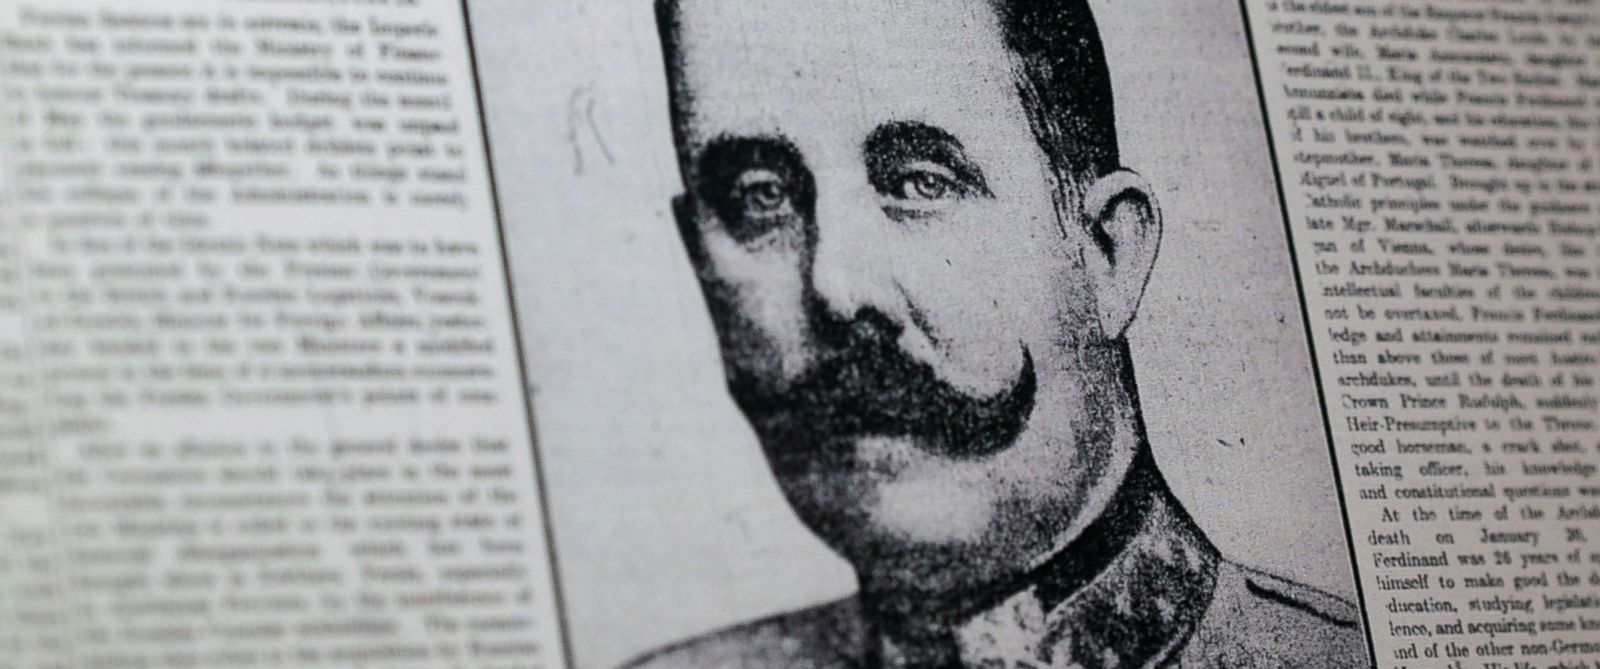 PHOTO: This April 4, 2014 photo shows a reproduction of a London newspaper front page from 1914, which writes about the assassination of Archduke Franz Ferdinand, on display at the National World War I Museum in Kansas City, Mo.